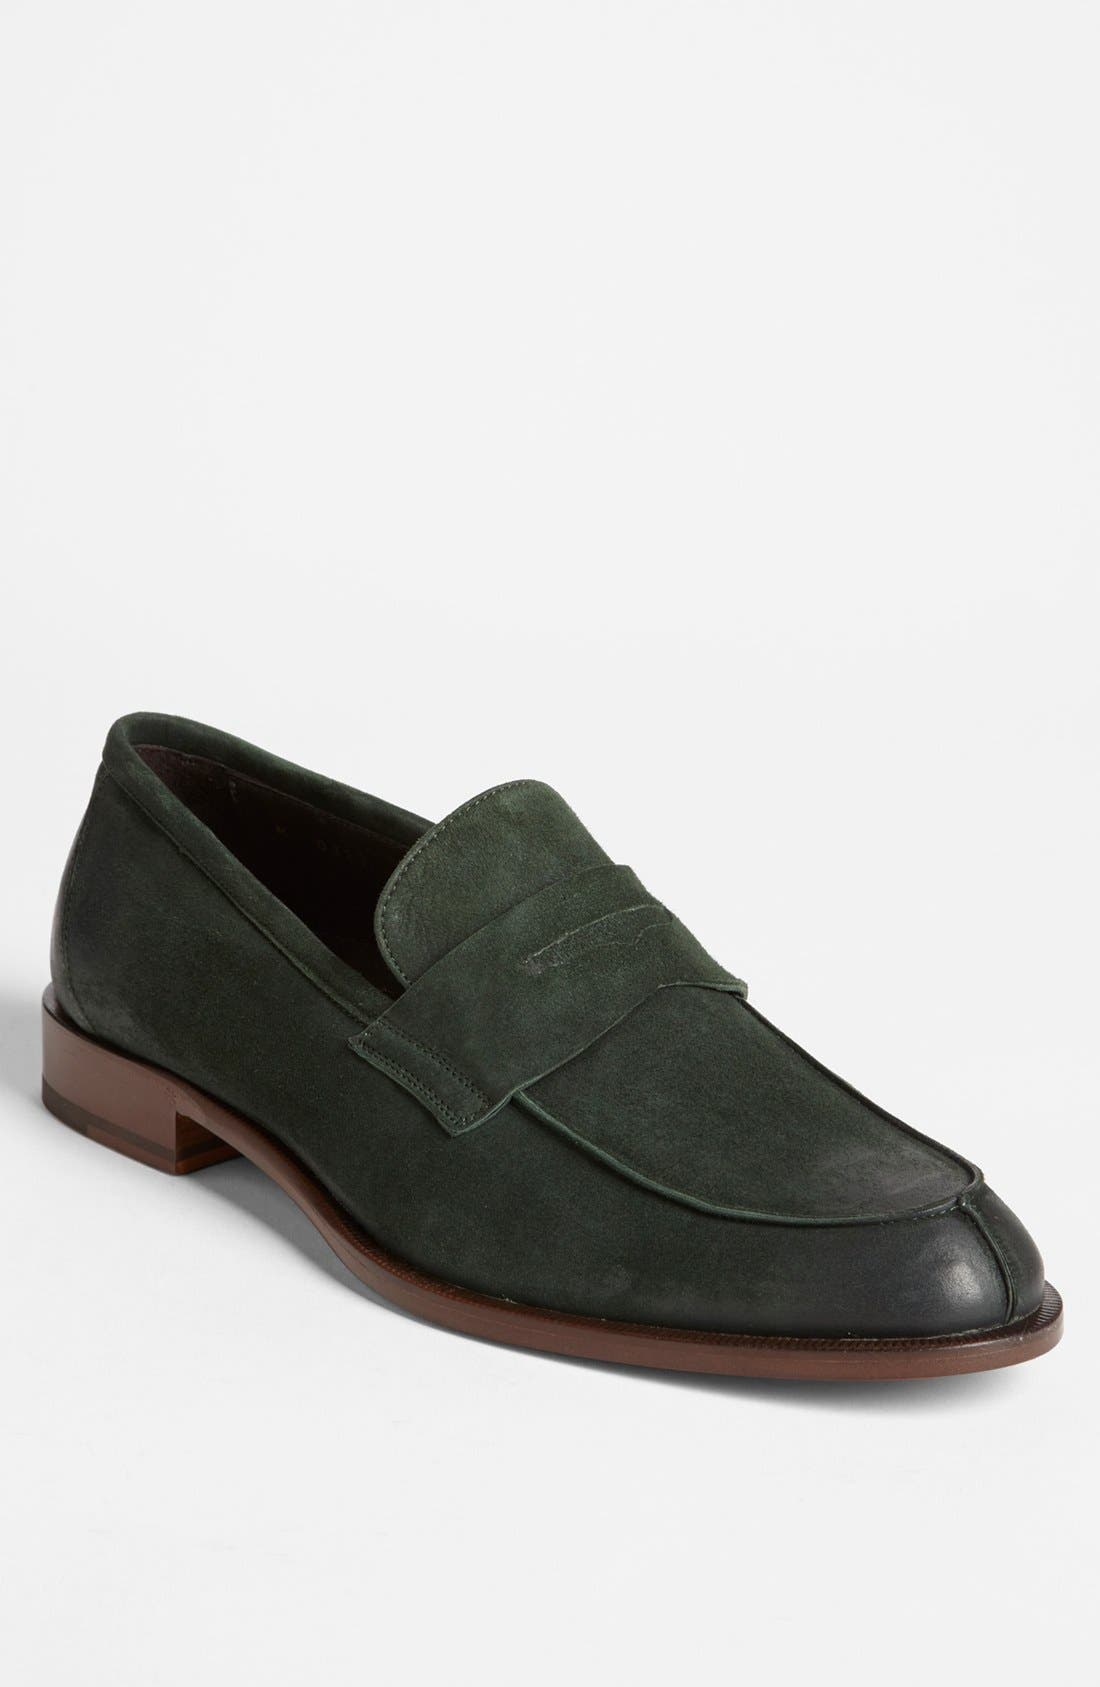 Alternate Image 1 Selected - Bruno Magli 'Rotzo' Penny Loafer